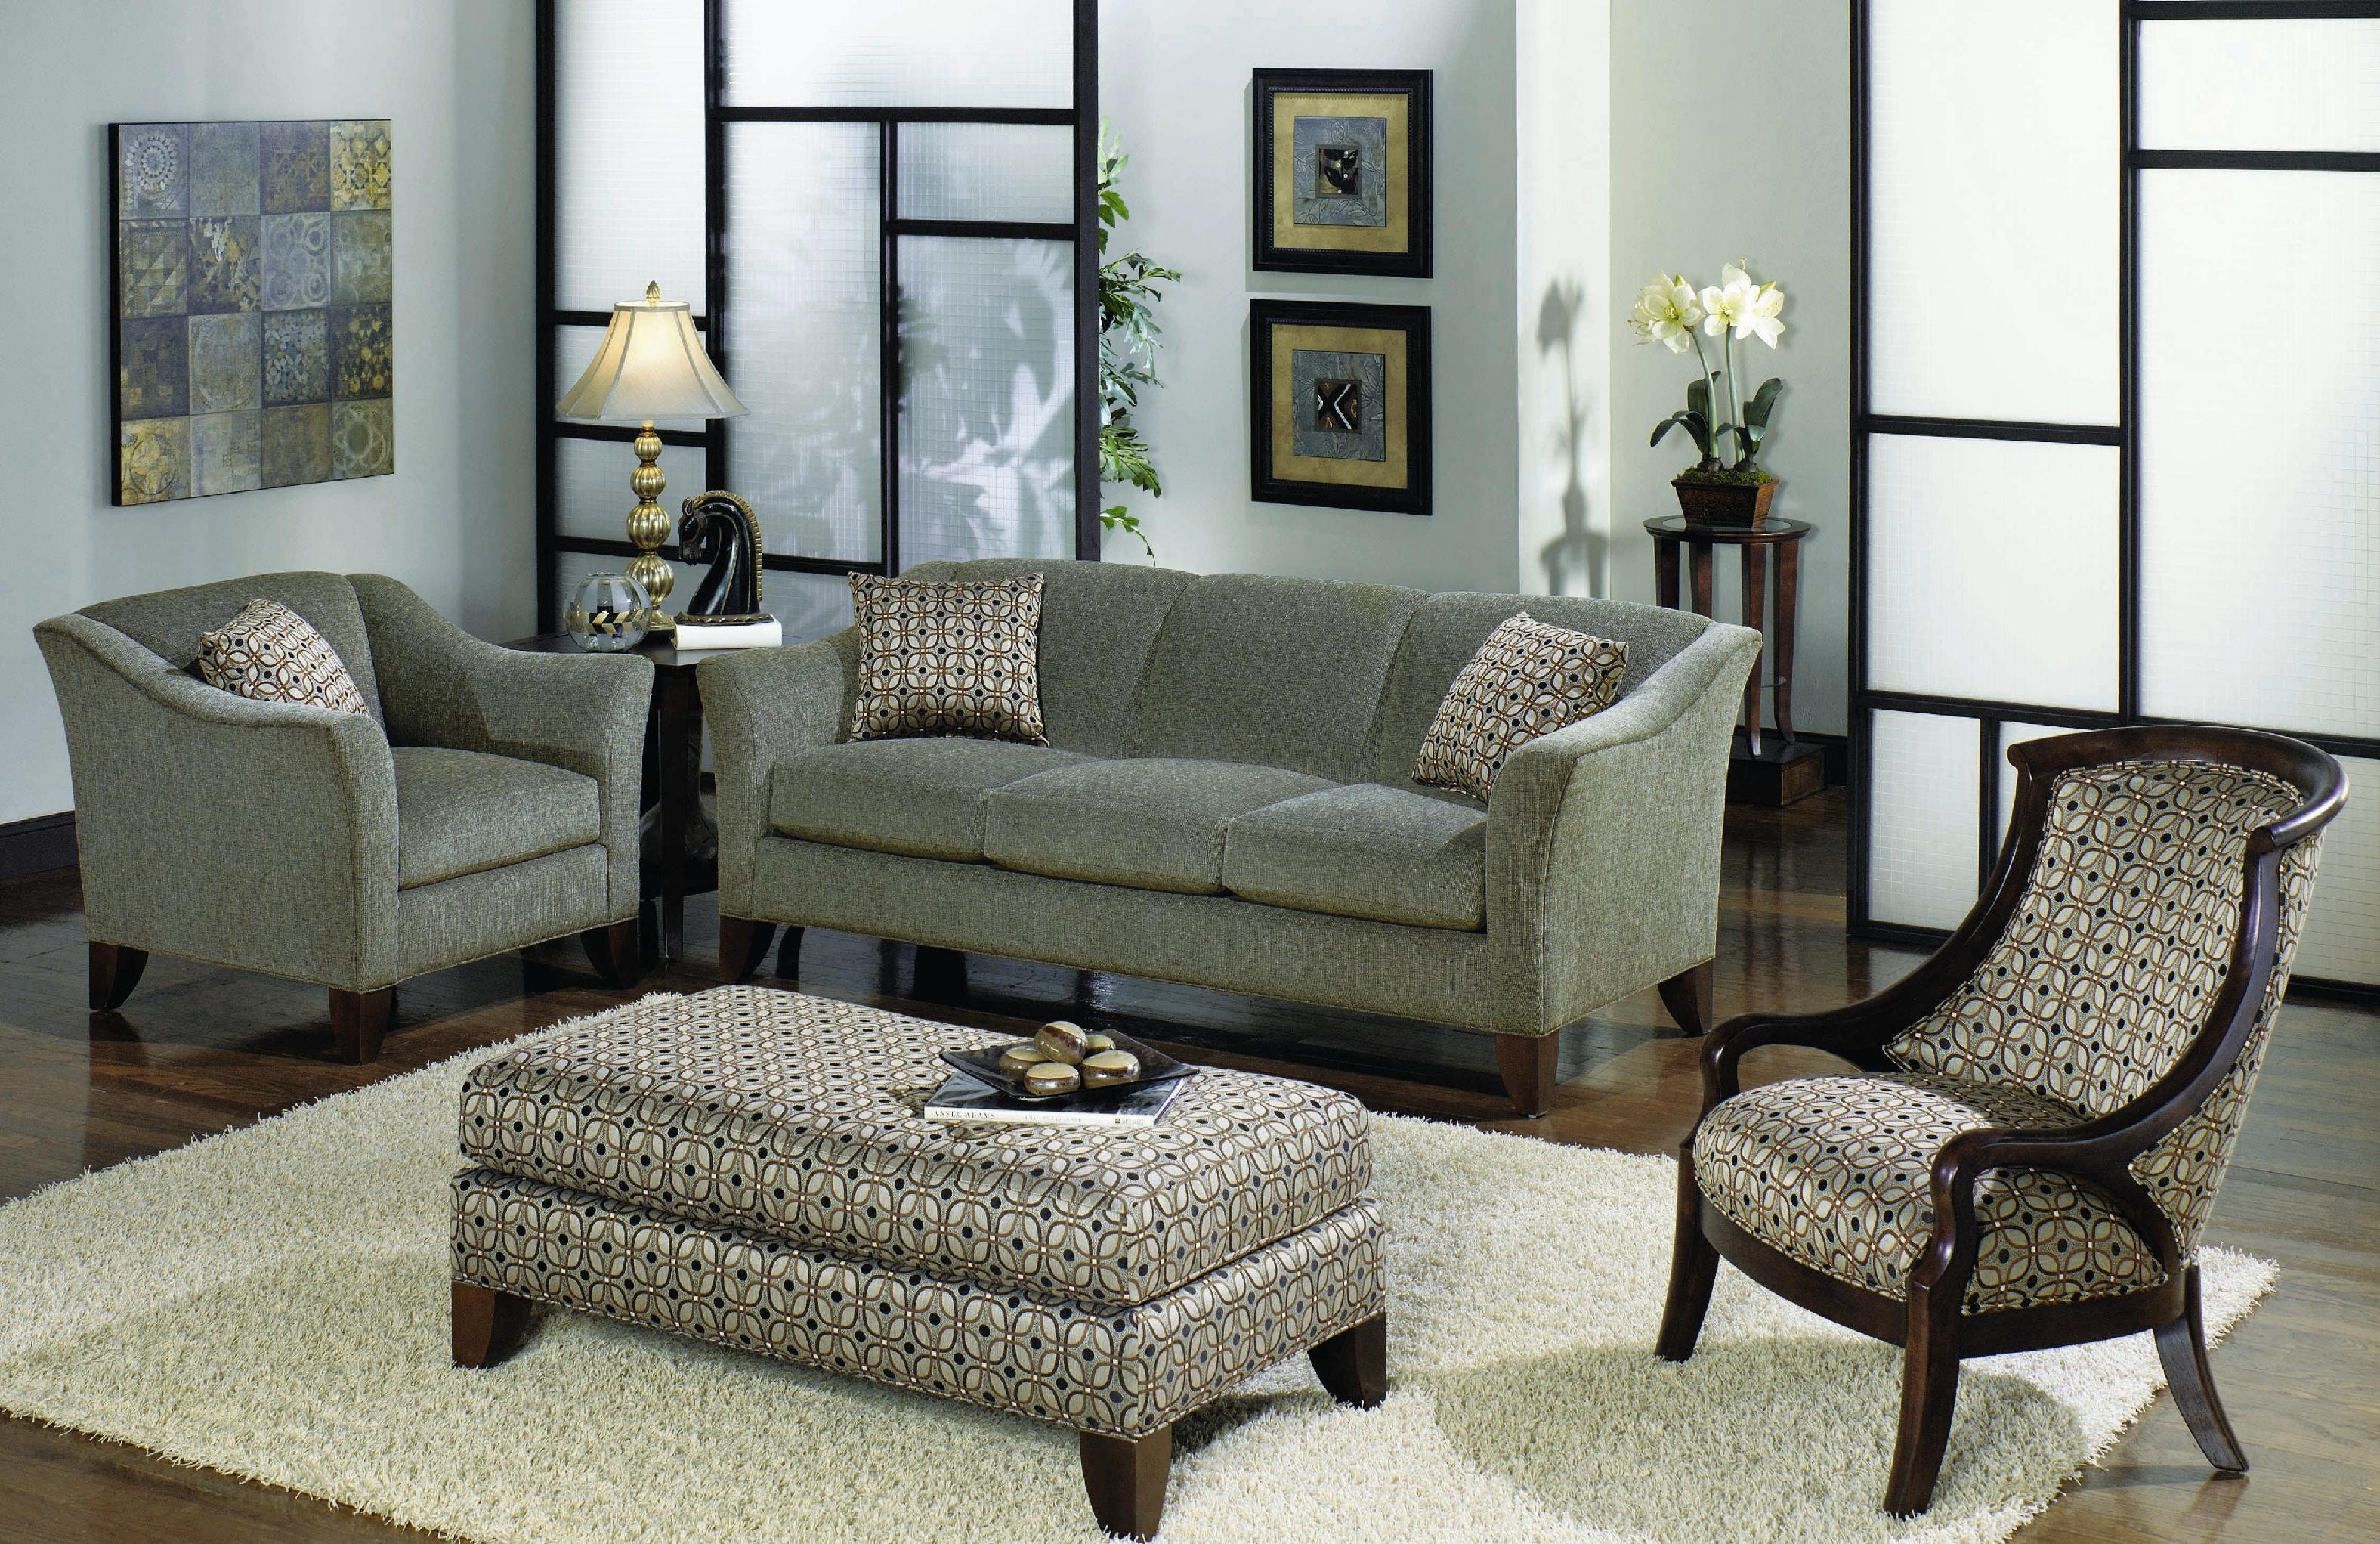 Hickorycraft Three Cushion Sofa 784450 · Hickorycraft Three Cushion Sofa  784450 ...